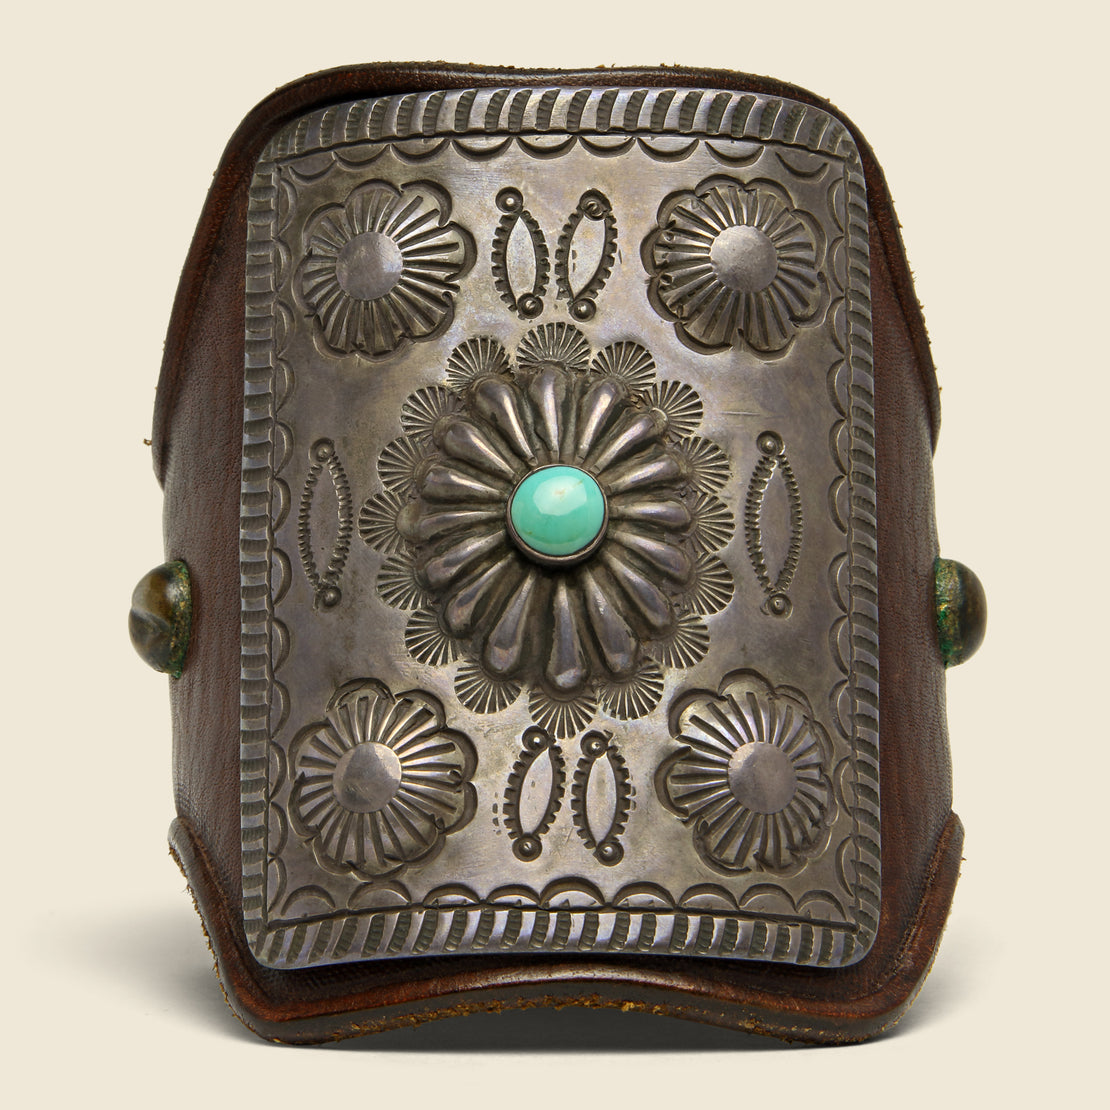 Stamped Concho Flower Leather Ketoh - Sterling/Turquoise/Leather